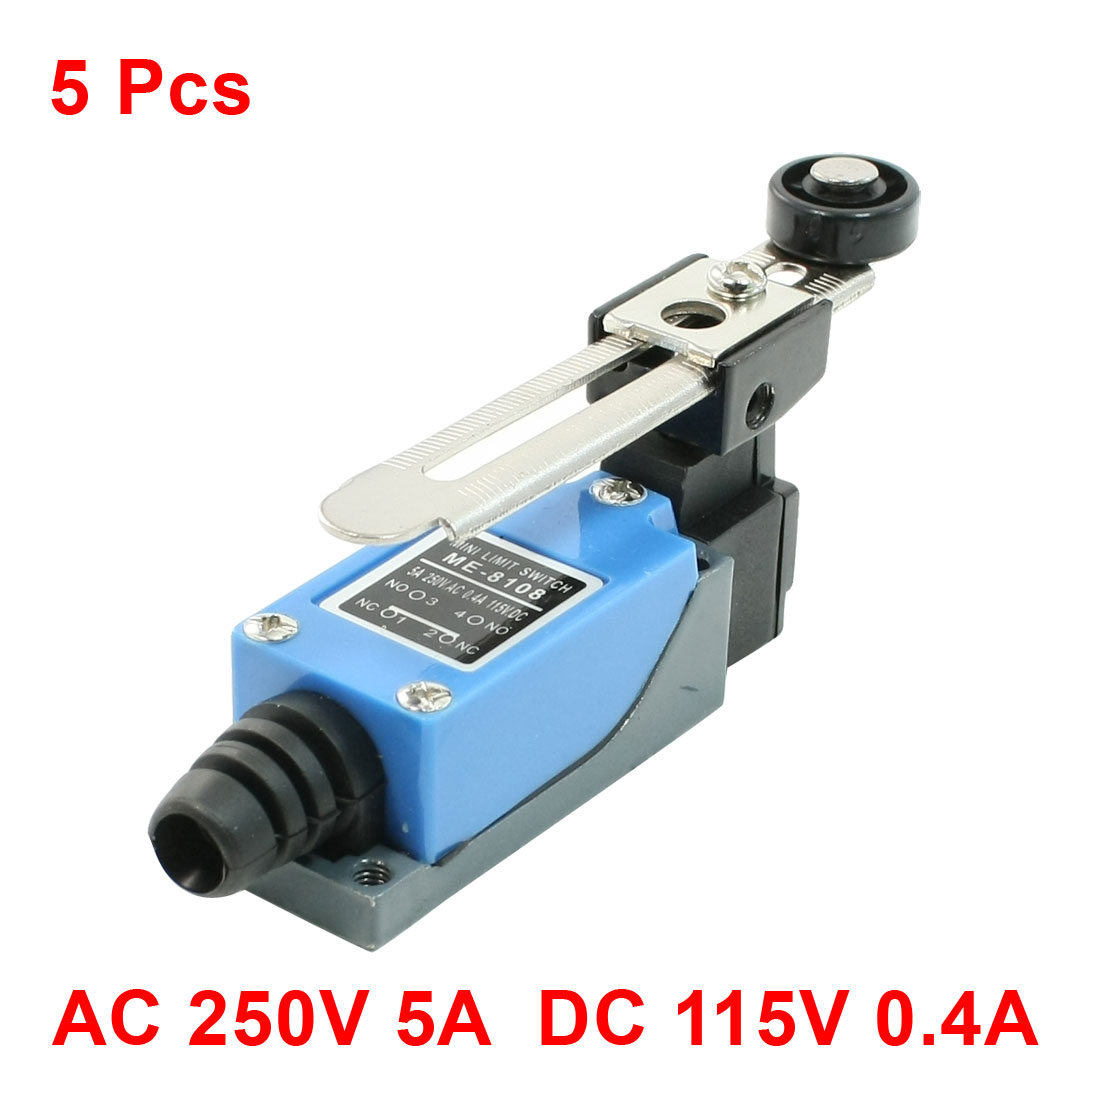 5 Pcs Momentary Rotary Roller Lever Arm Limit Switch for CNC Mill Plasma